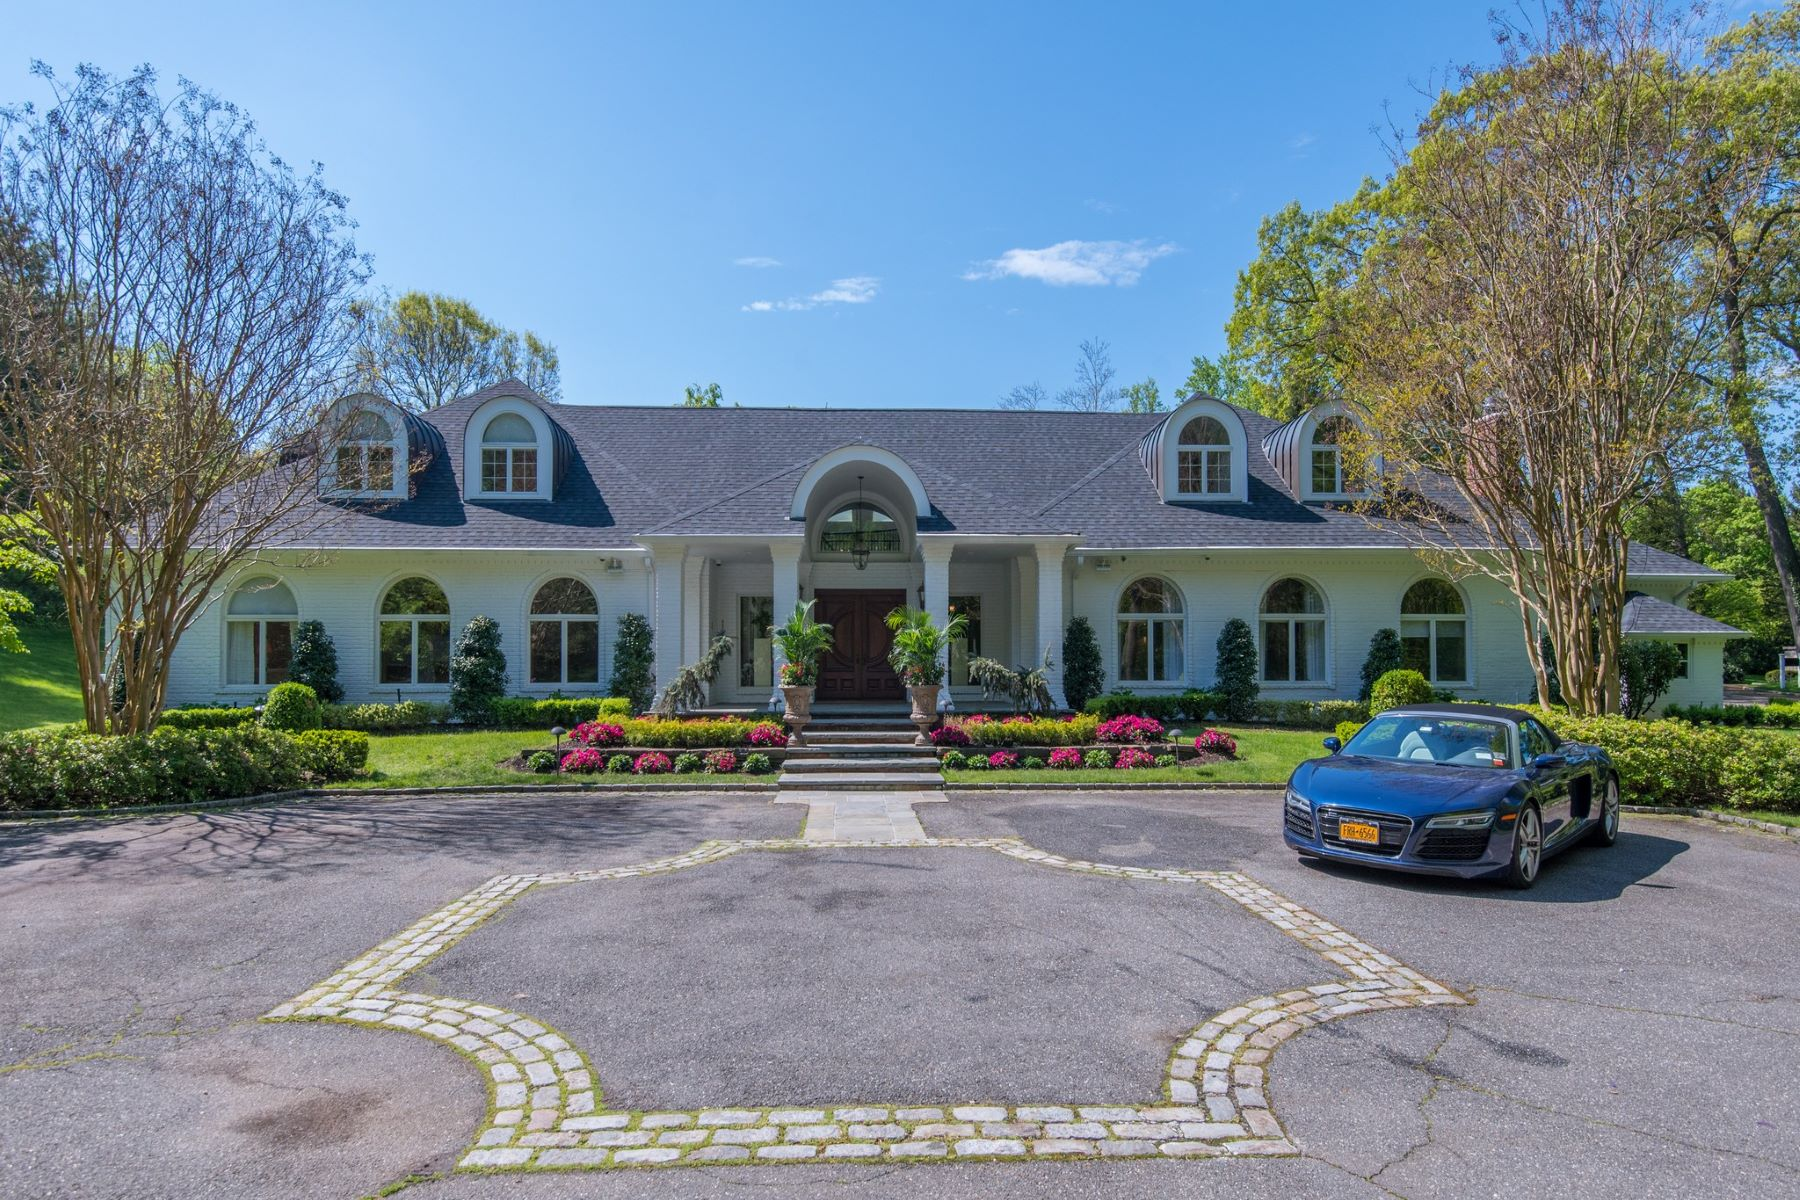 Single Family Homes for Sale at Cold Spring Hrbr 11 Dock Hollow Road Cold Spring Harbor, New York 11724 United States